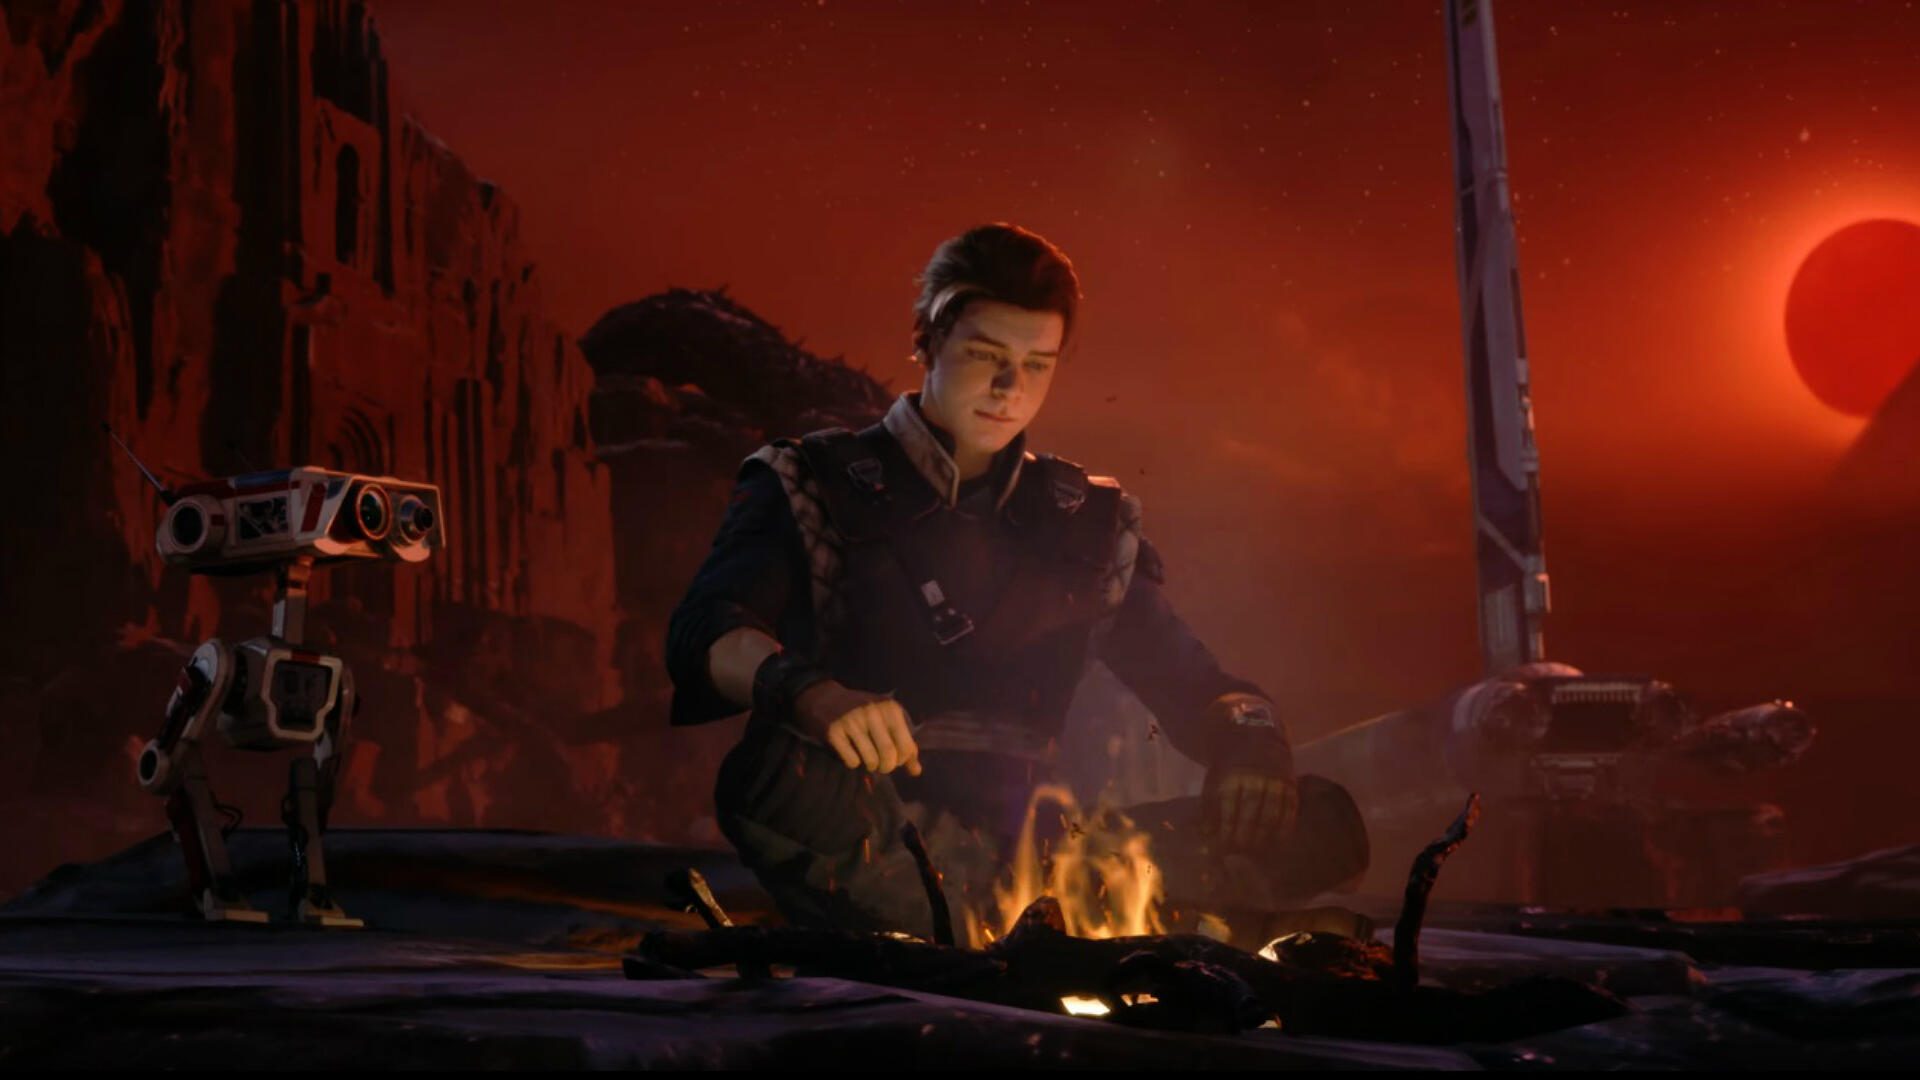 Does Star Wars Jedi Fallen Order Have New Game Plus?